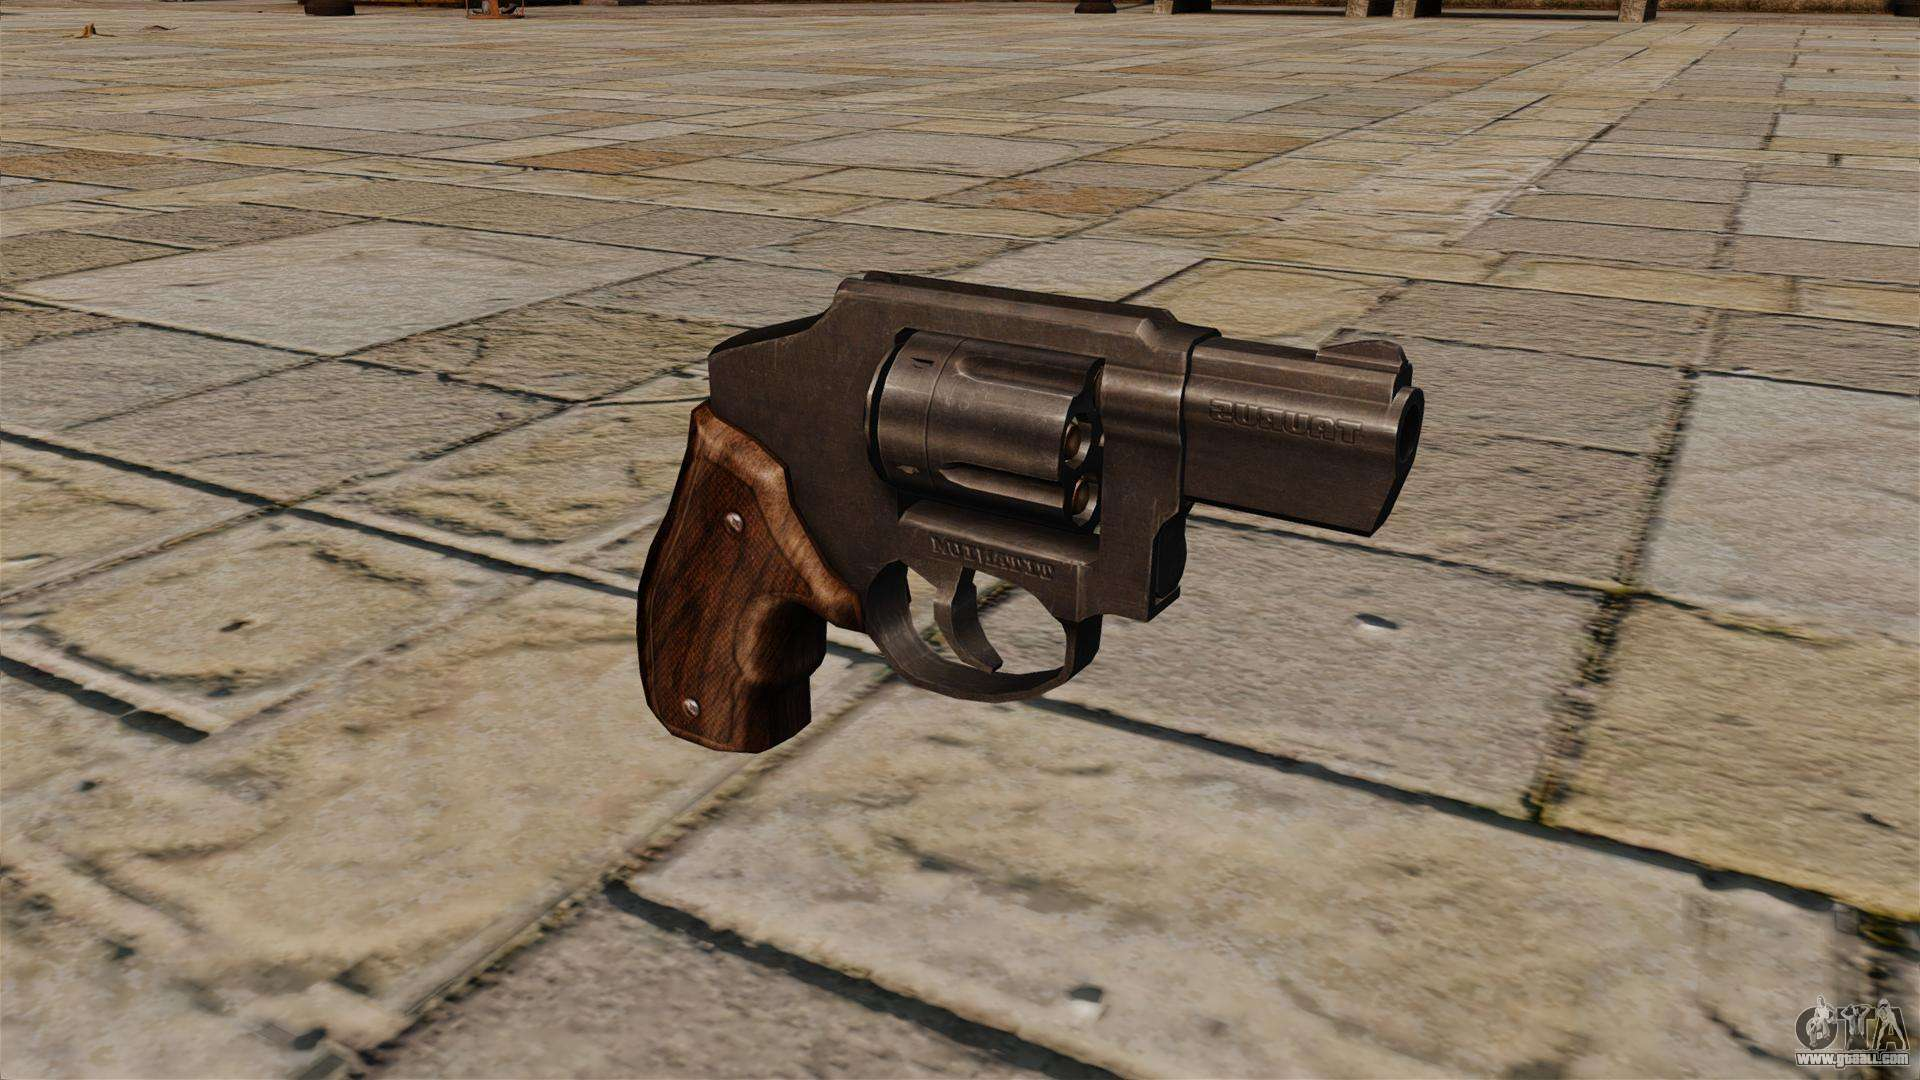 38 special snubnose revolver for gta 4 thecheapjerseys Image collections